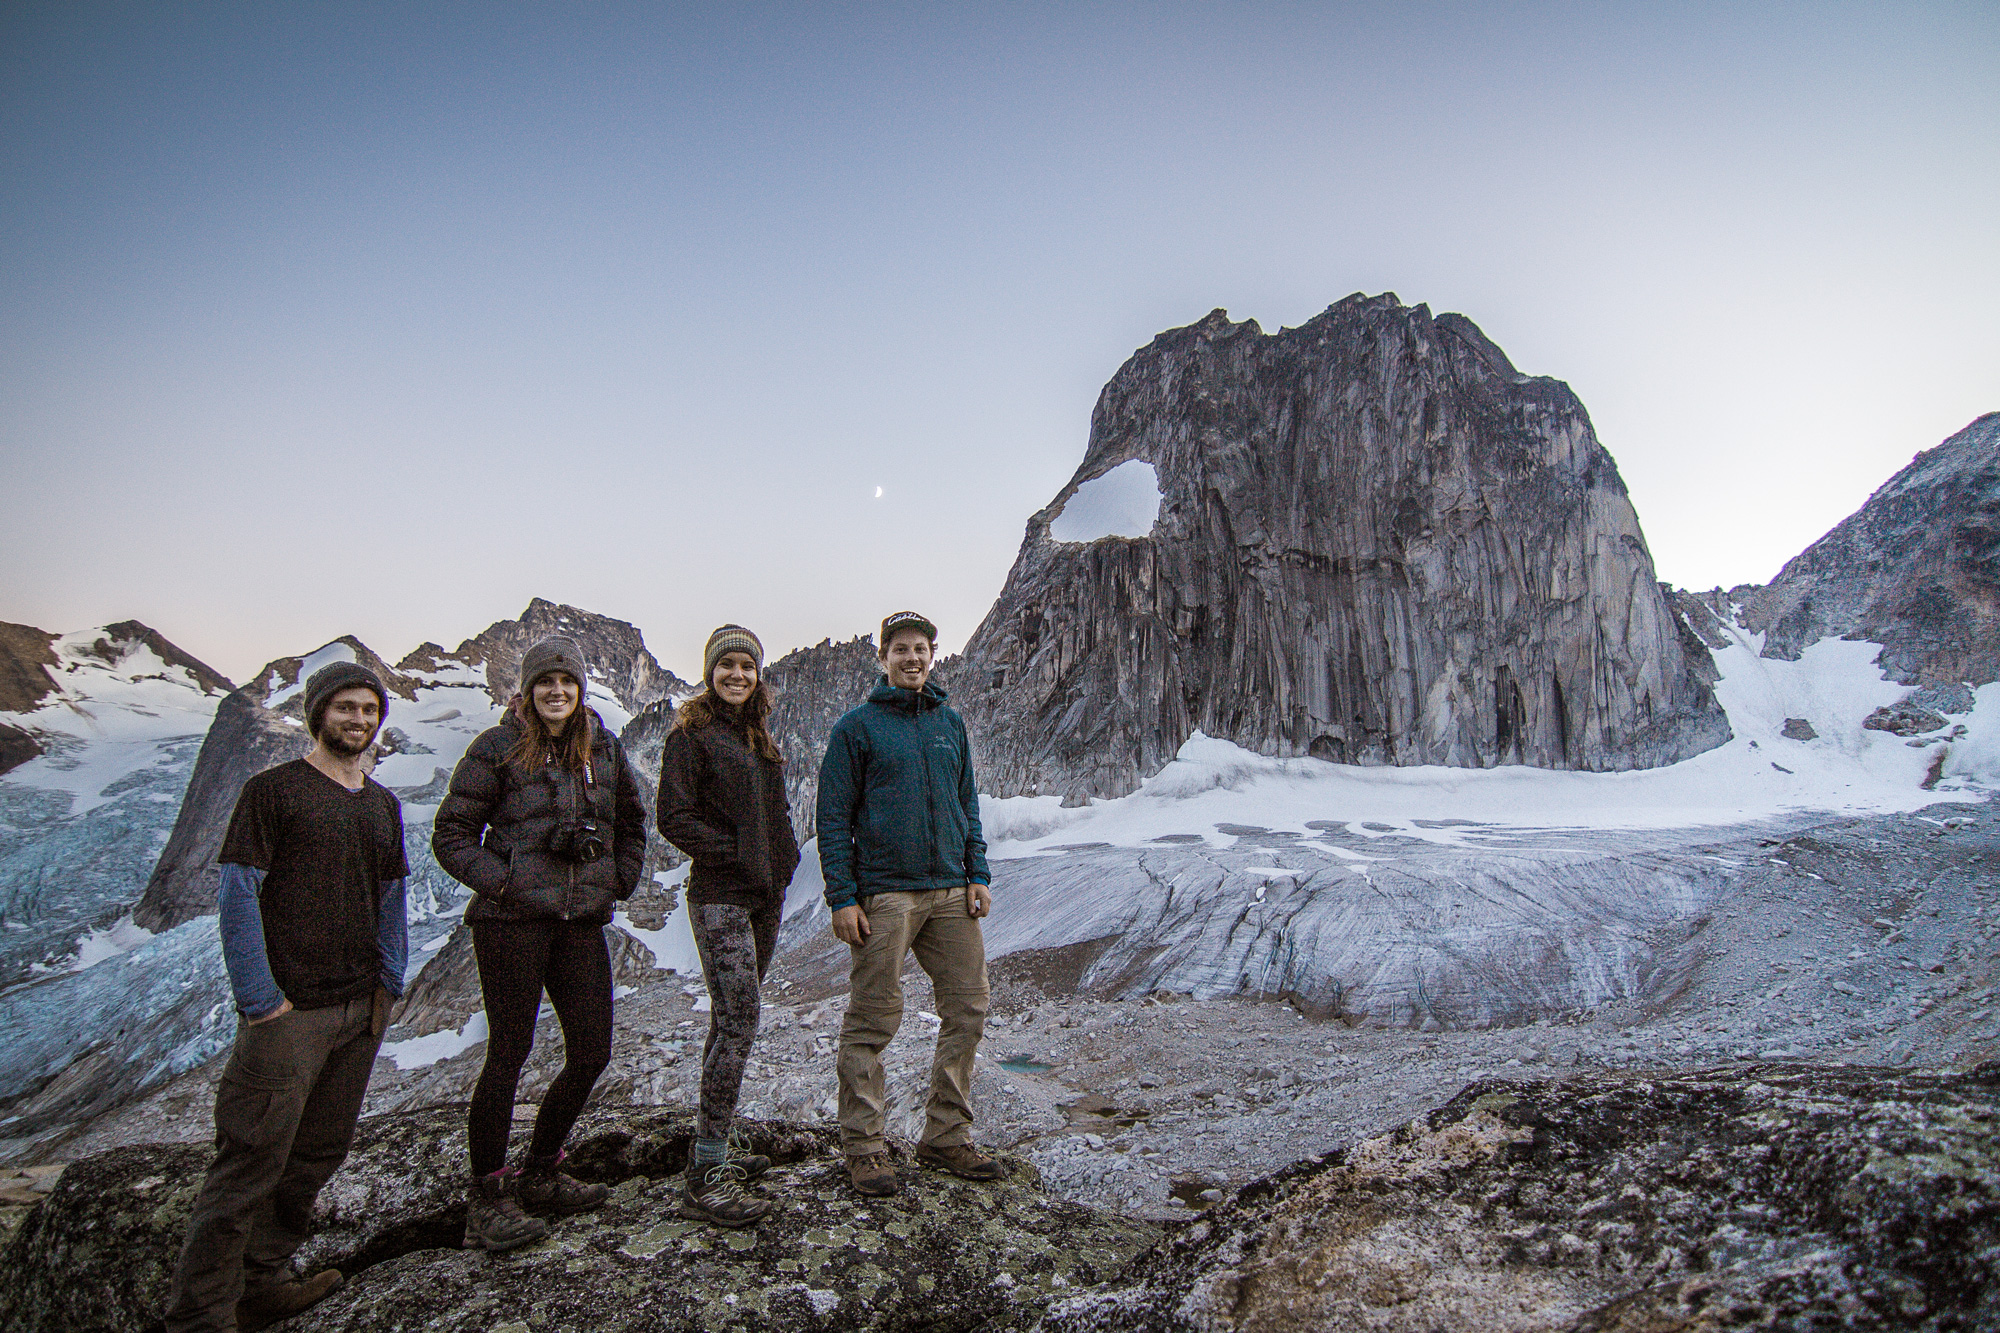 Housemate meeting in the Bugaboos Provincial Park